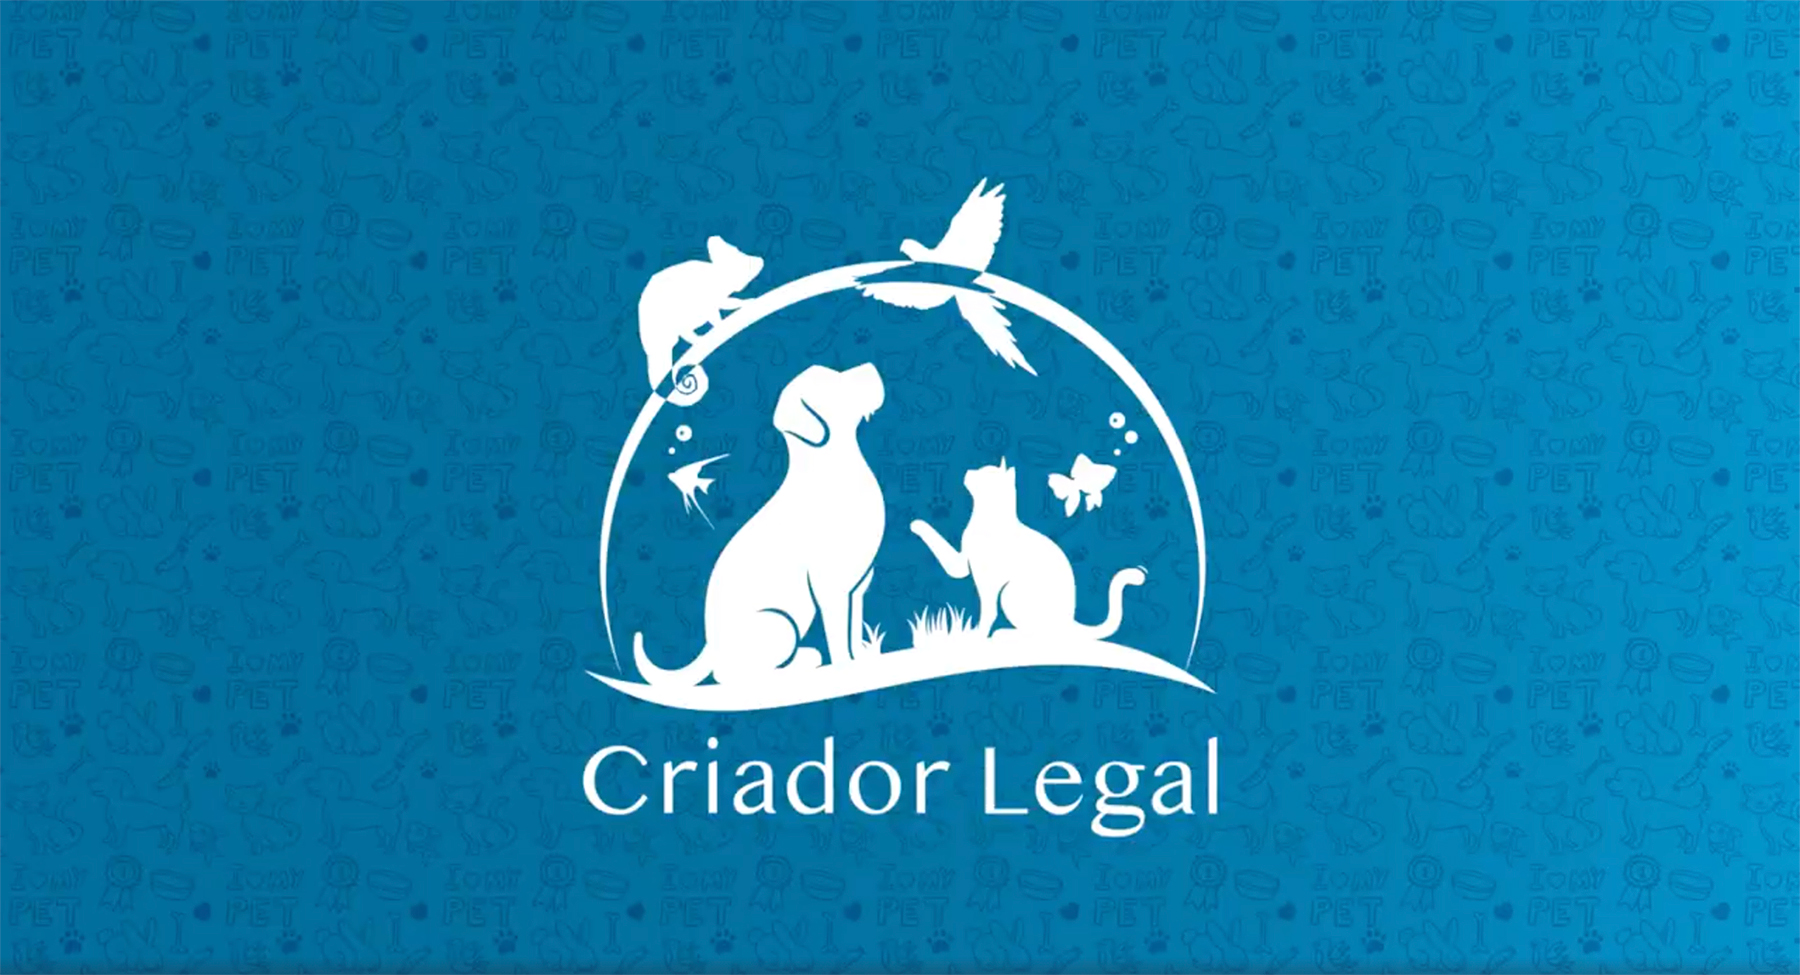 Criador Legal